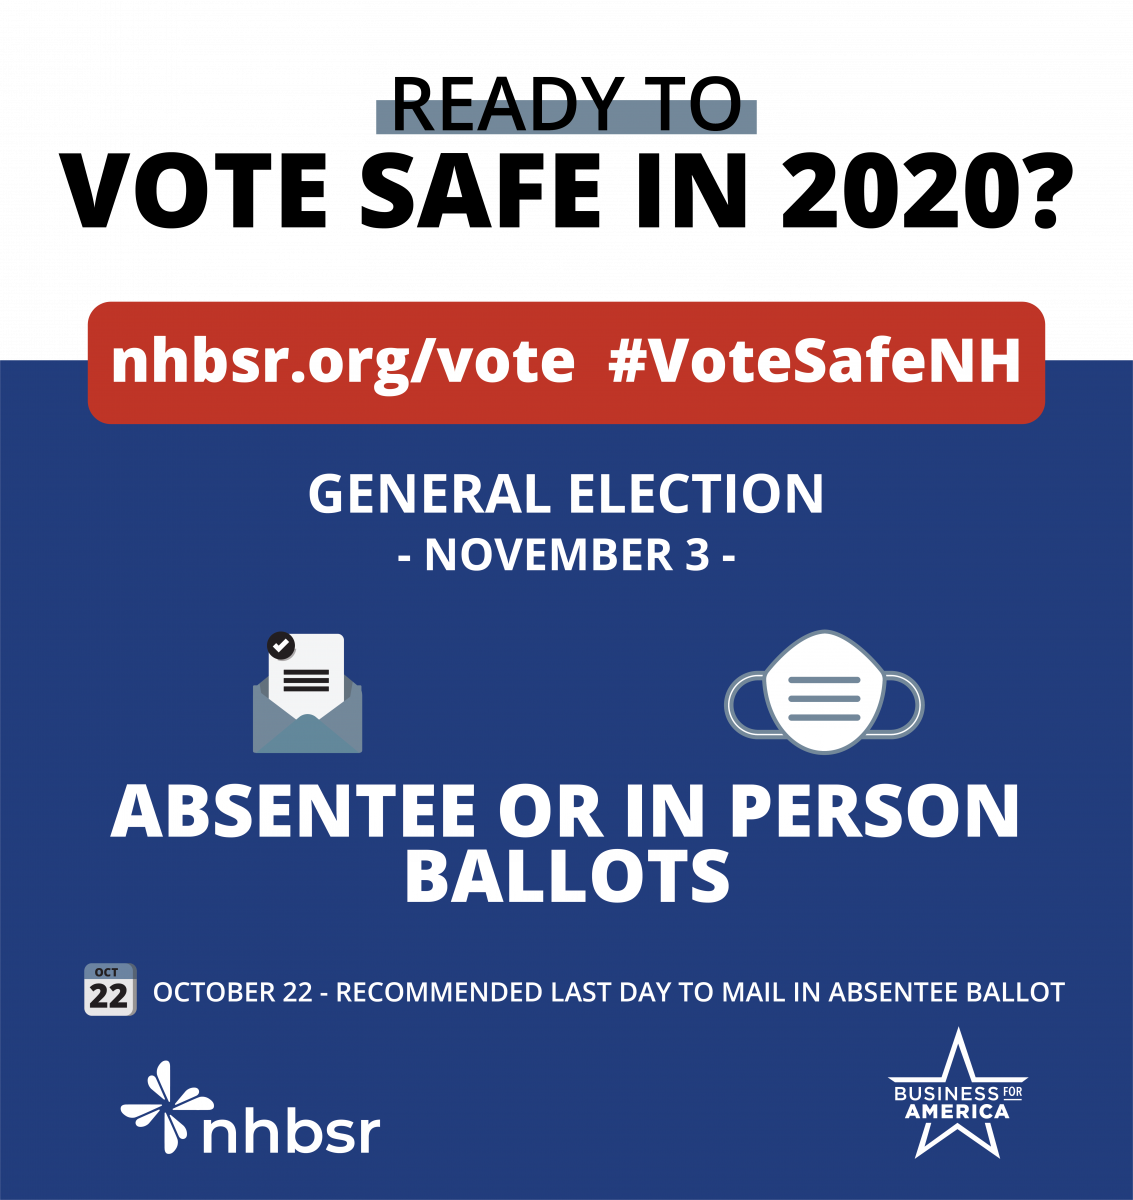 vsnh_general_ellection_reminder_trans-01.png